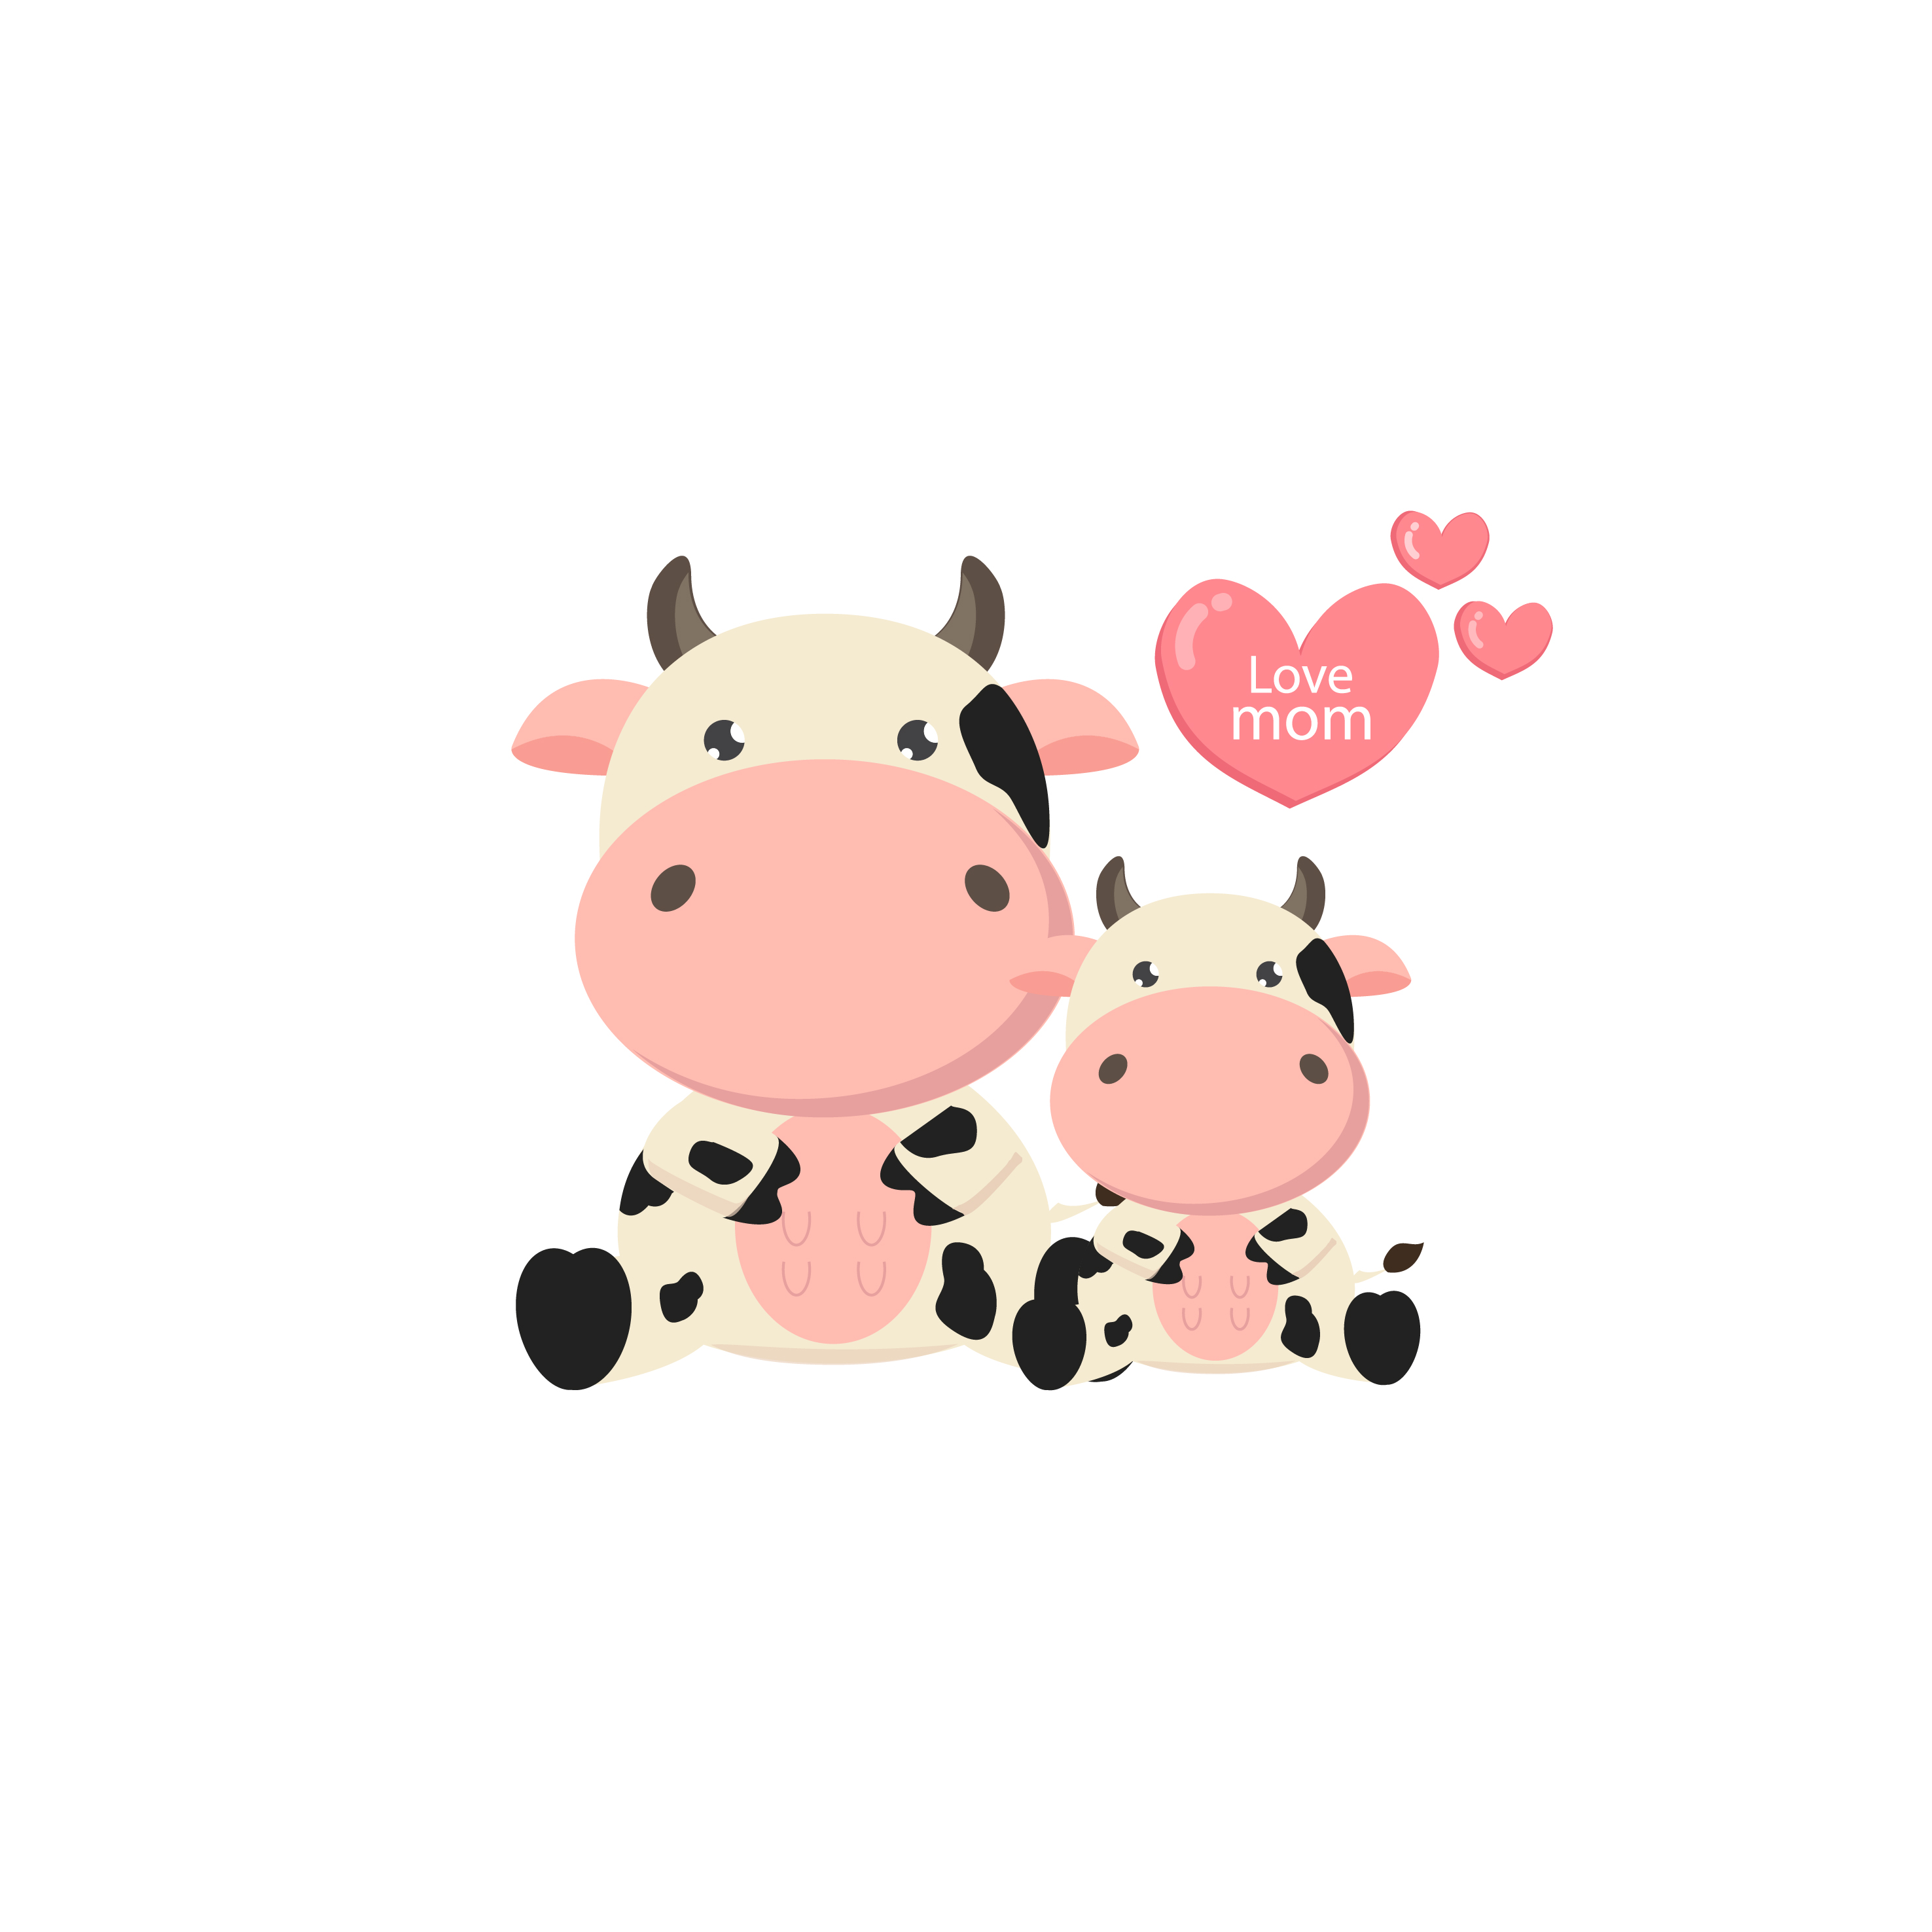 Mother And Baby Cow Cute Farm Animal Cartoon Download Free Vectors Clipart Graphics Vector Art